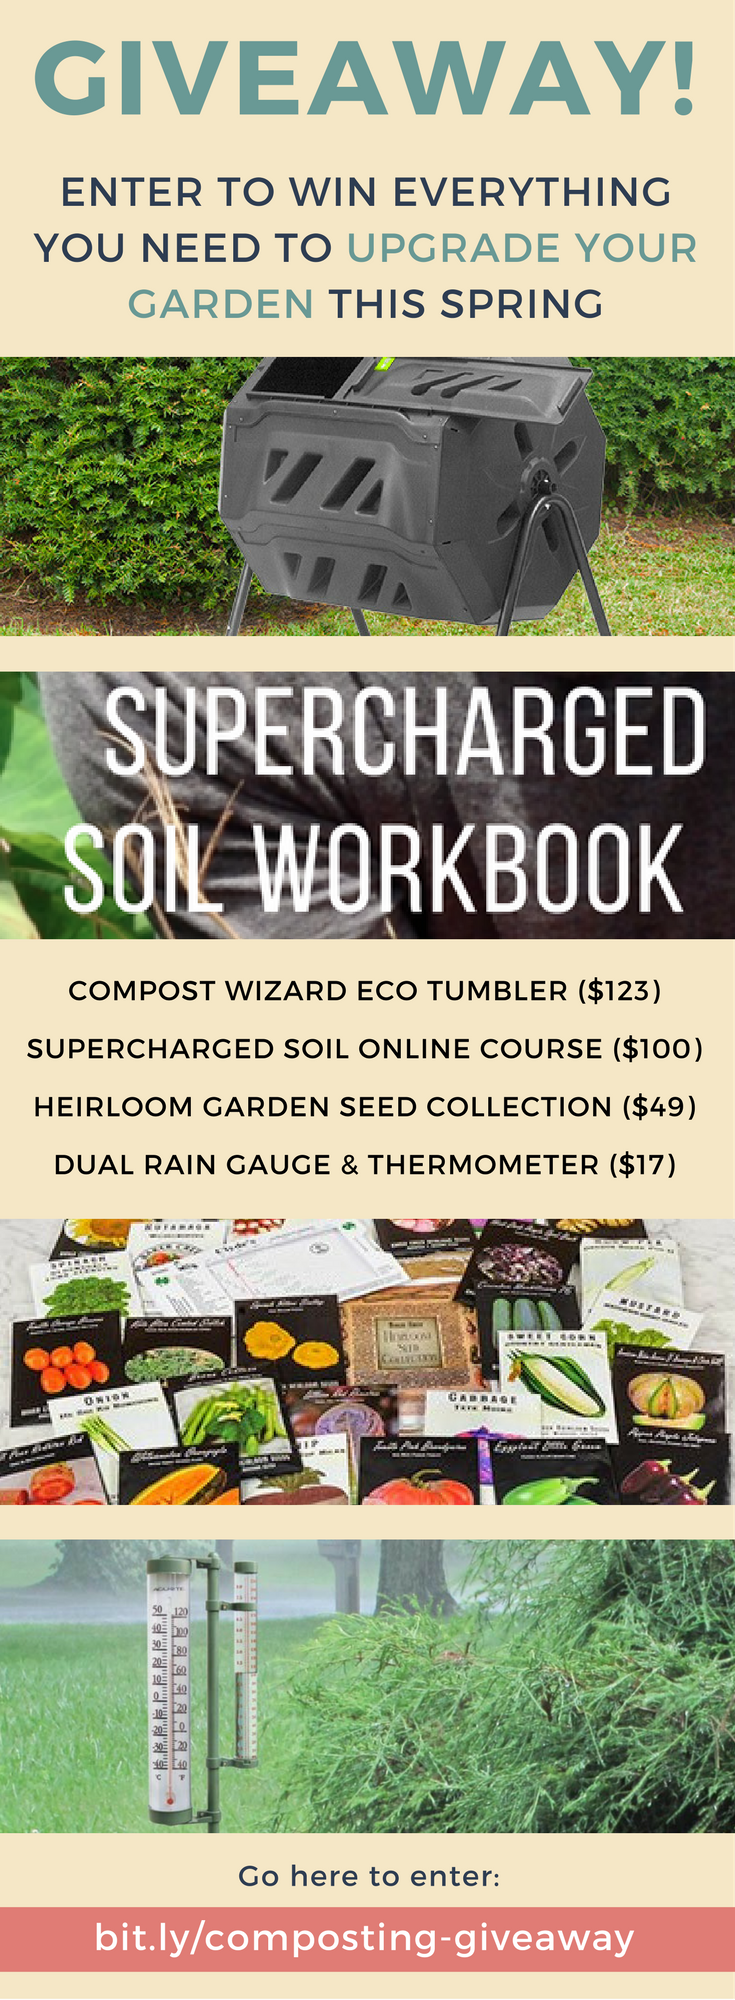 UPGRADE YOUR GARDEN GIVEAWAY! This season, we're giving one lucky winner the education, gear and seeds to upgrade their garden! | http://bit.ly/composting-giveaway/ | Enter to win: Supercharged Soil Through Strategic Composting Online Course ($100), Compost Wizard Eco Tumbler ($123.99), Baker Creek Heirloom Garden Seed Collection ($49), Acurite Rain Gauge and Thermometer Garden Stick ($17)